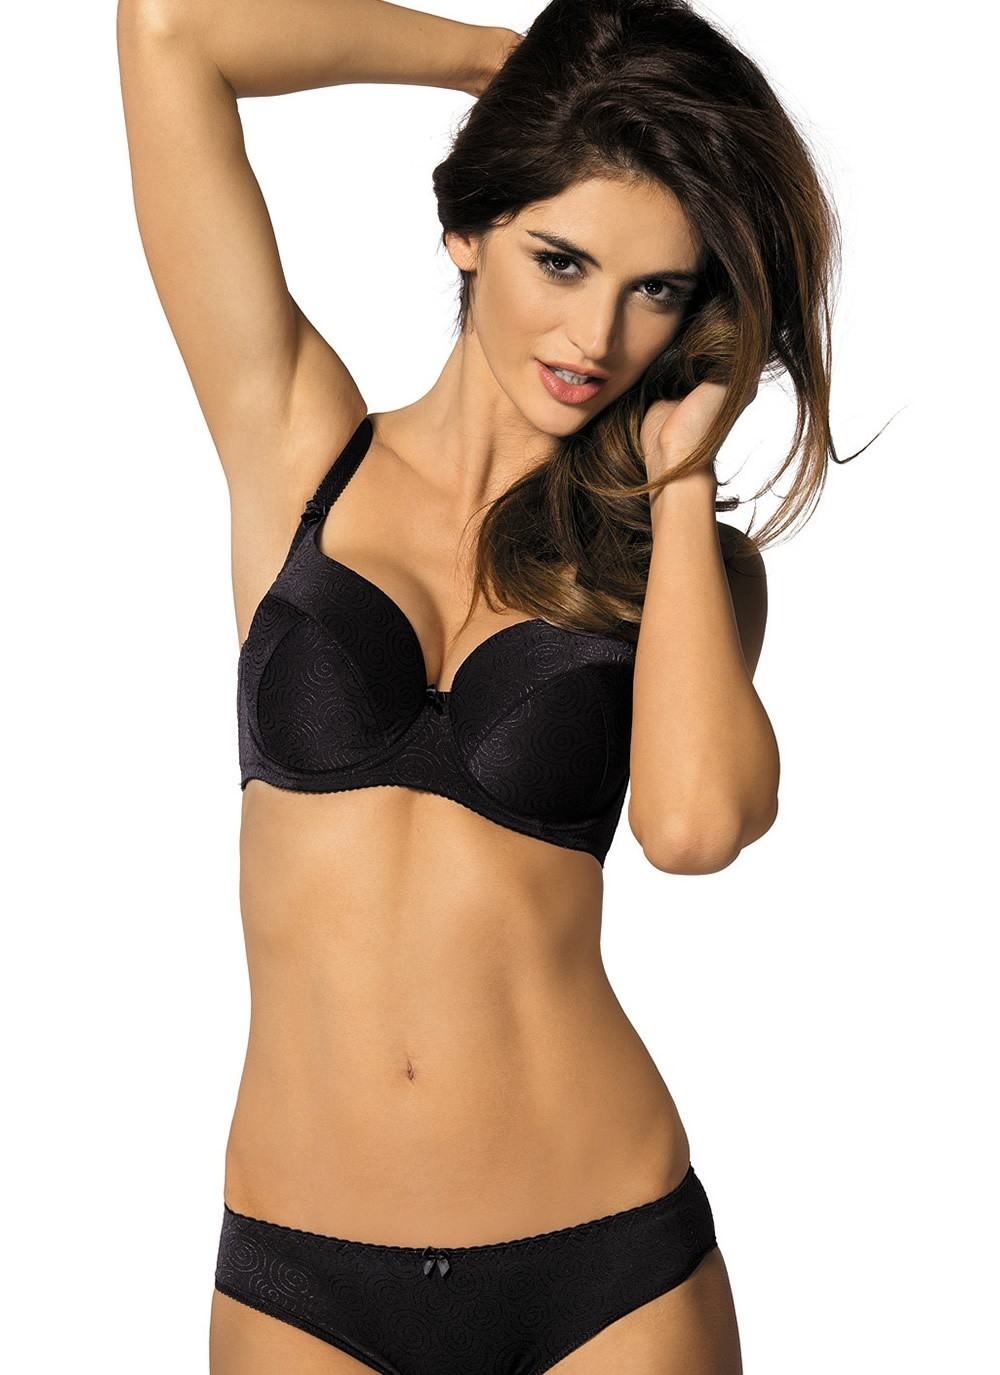 Gorteks Padded Push Up Bra